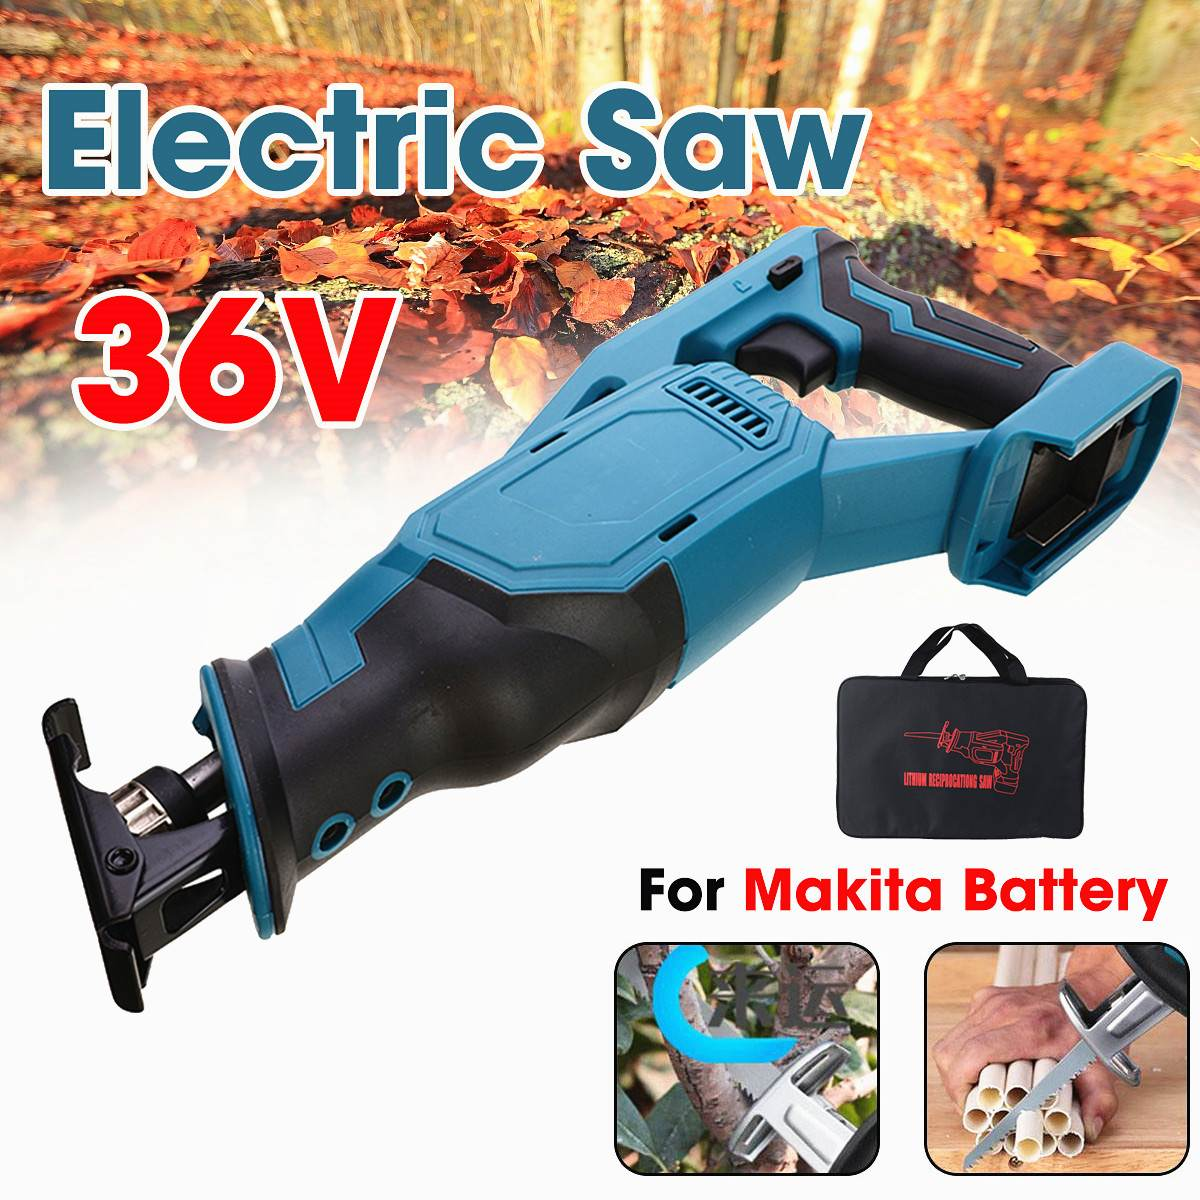 Cordless Electric Reciprocating Saw Electric Saw Woodworking Metal Cutting Electric Saw Power Tool for Makita Battery 36V